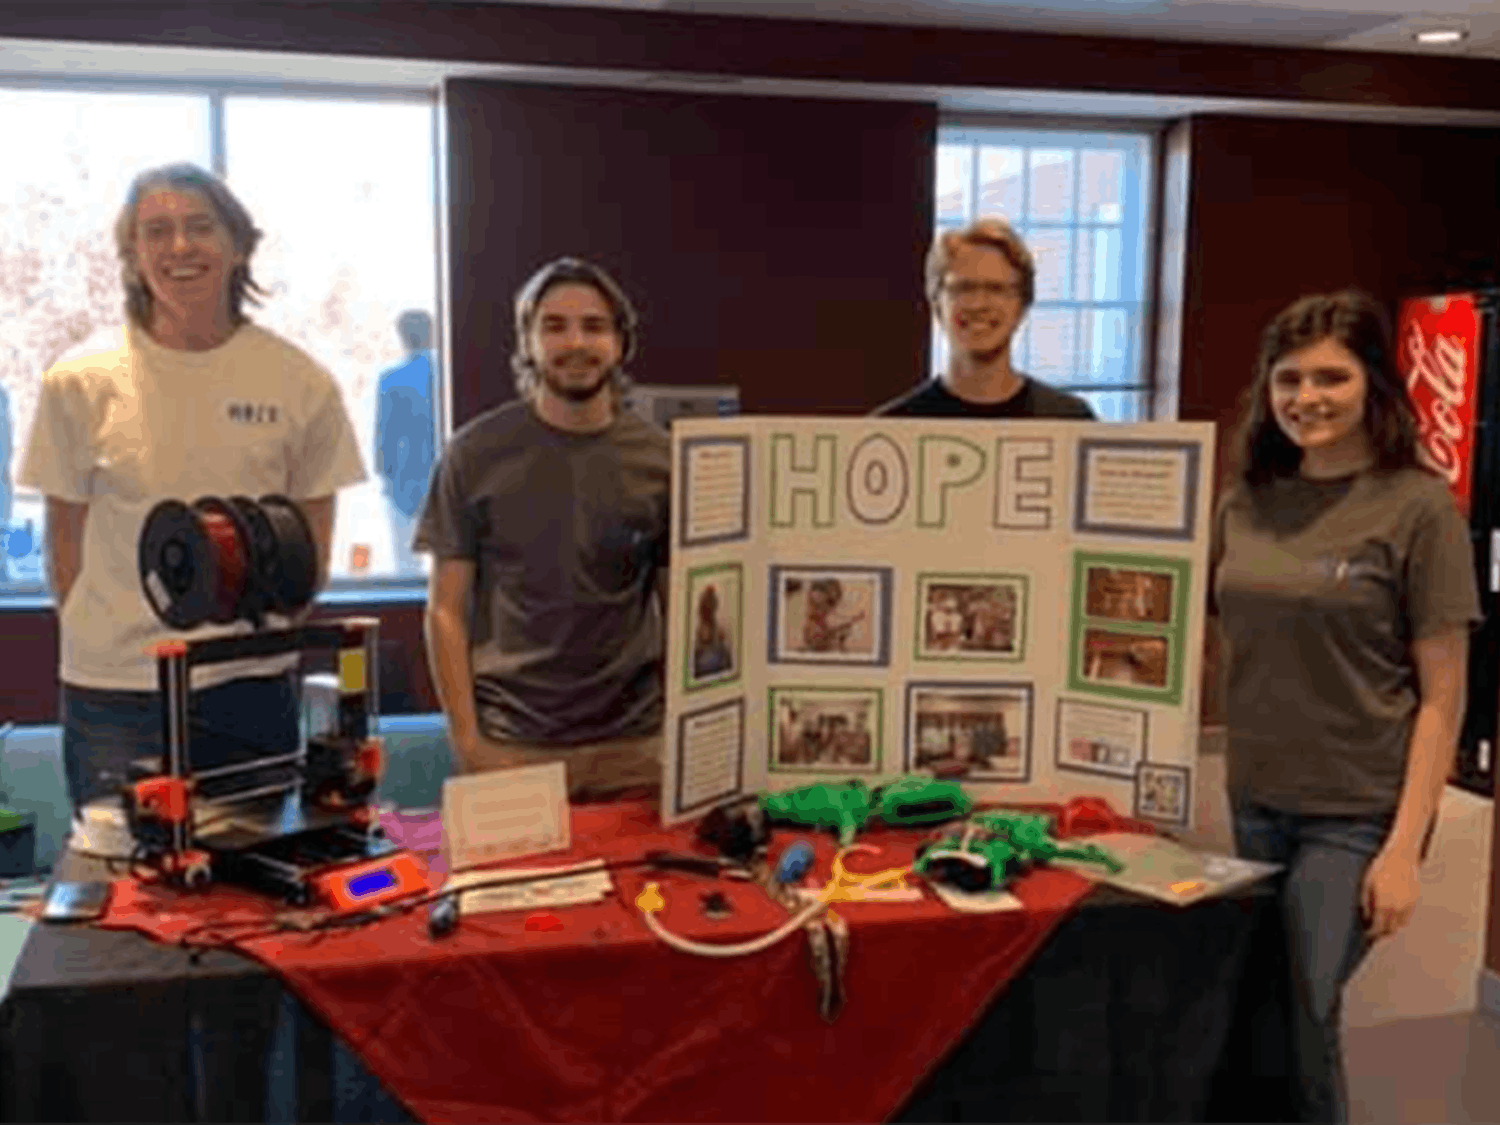 The Hands On Prosthetic Engineering organization at a table in the School of Journalism and Mass Communications. The table has an informational board, a 3D printer and examples of the organization's work.